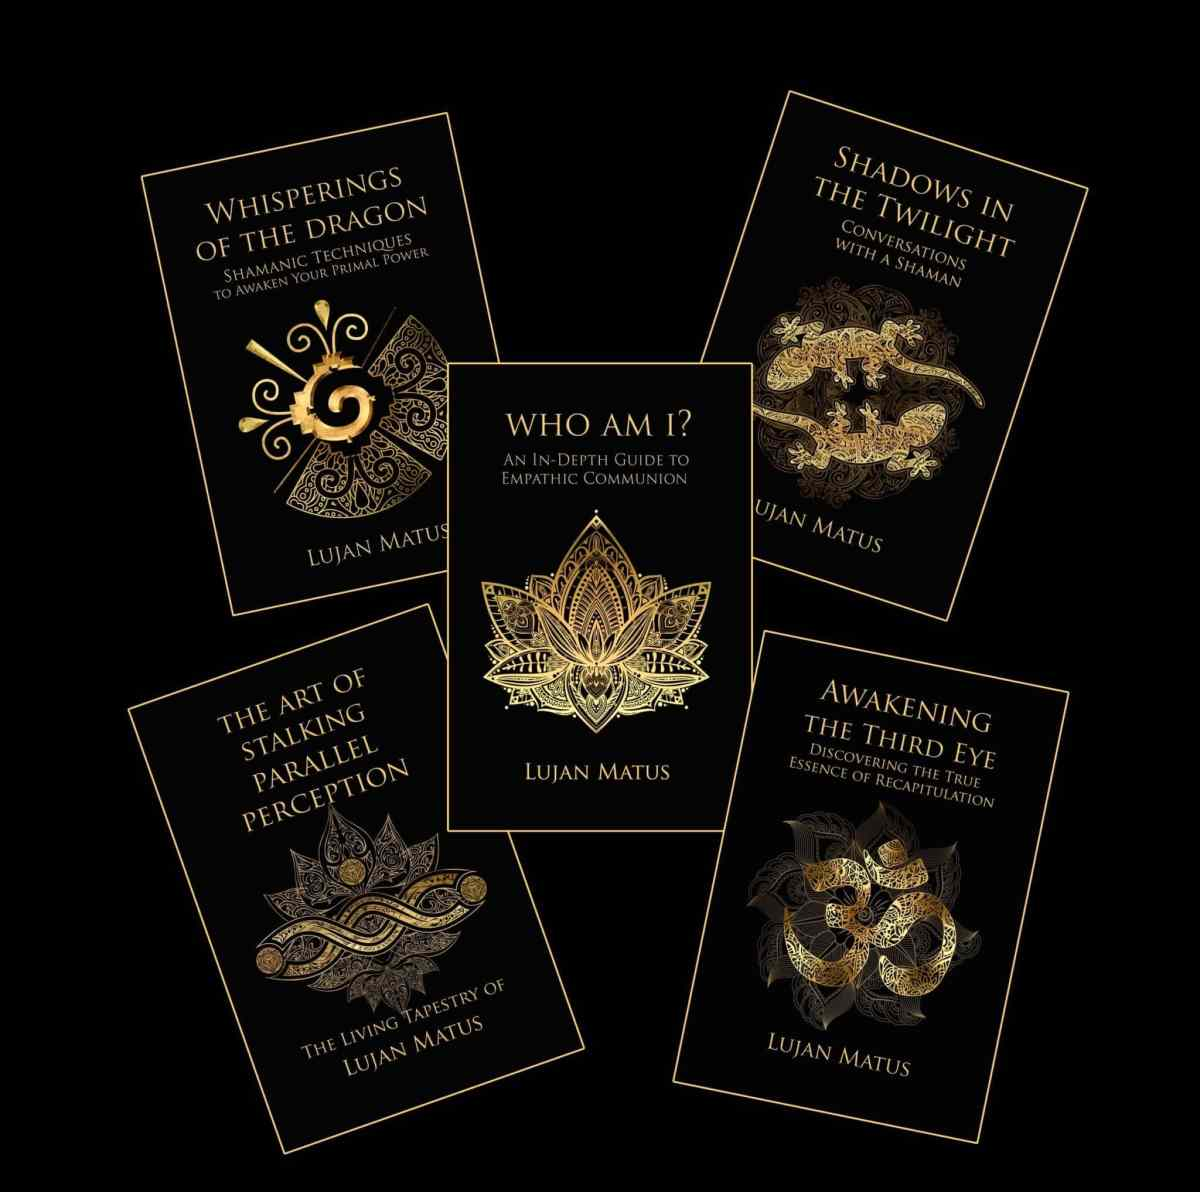 Parallel Perception - Spiritual Practices For